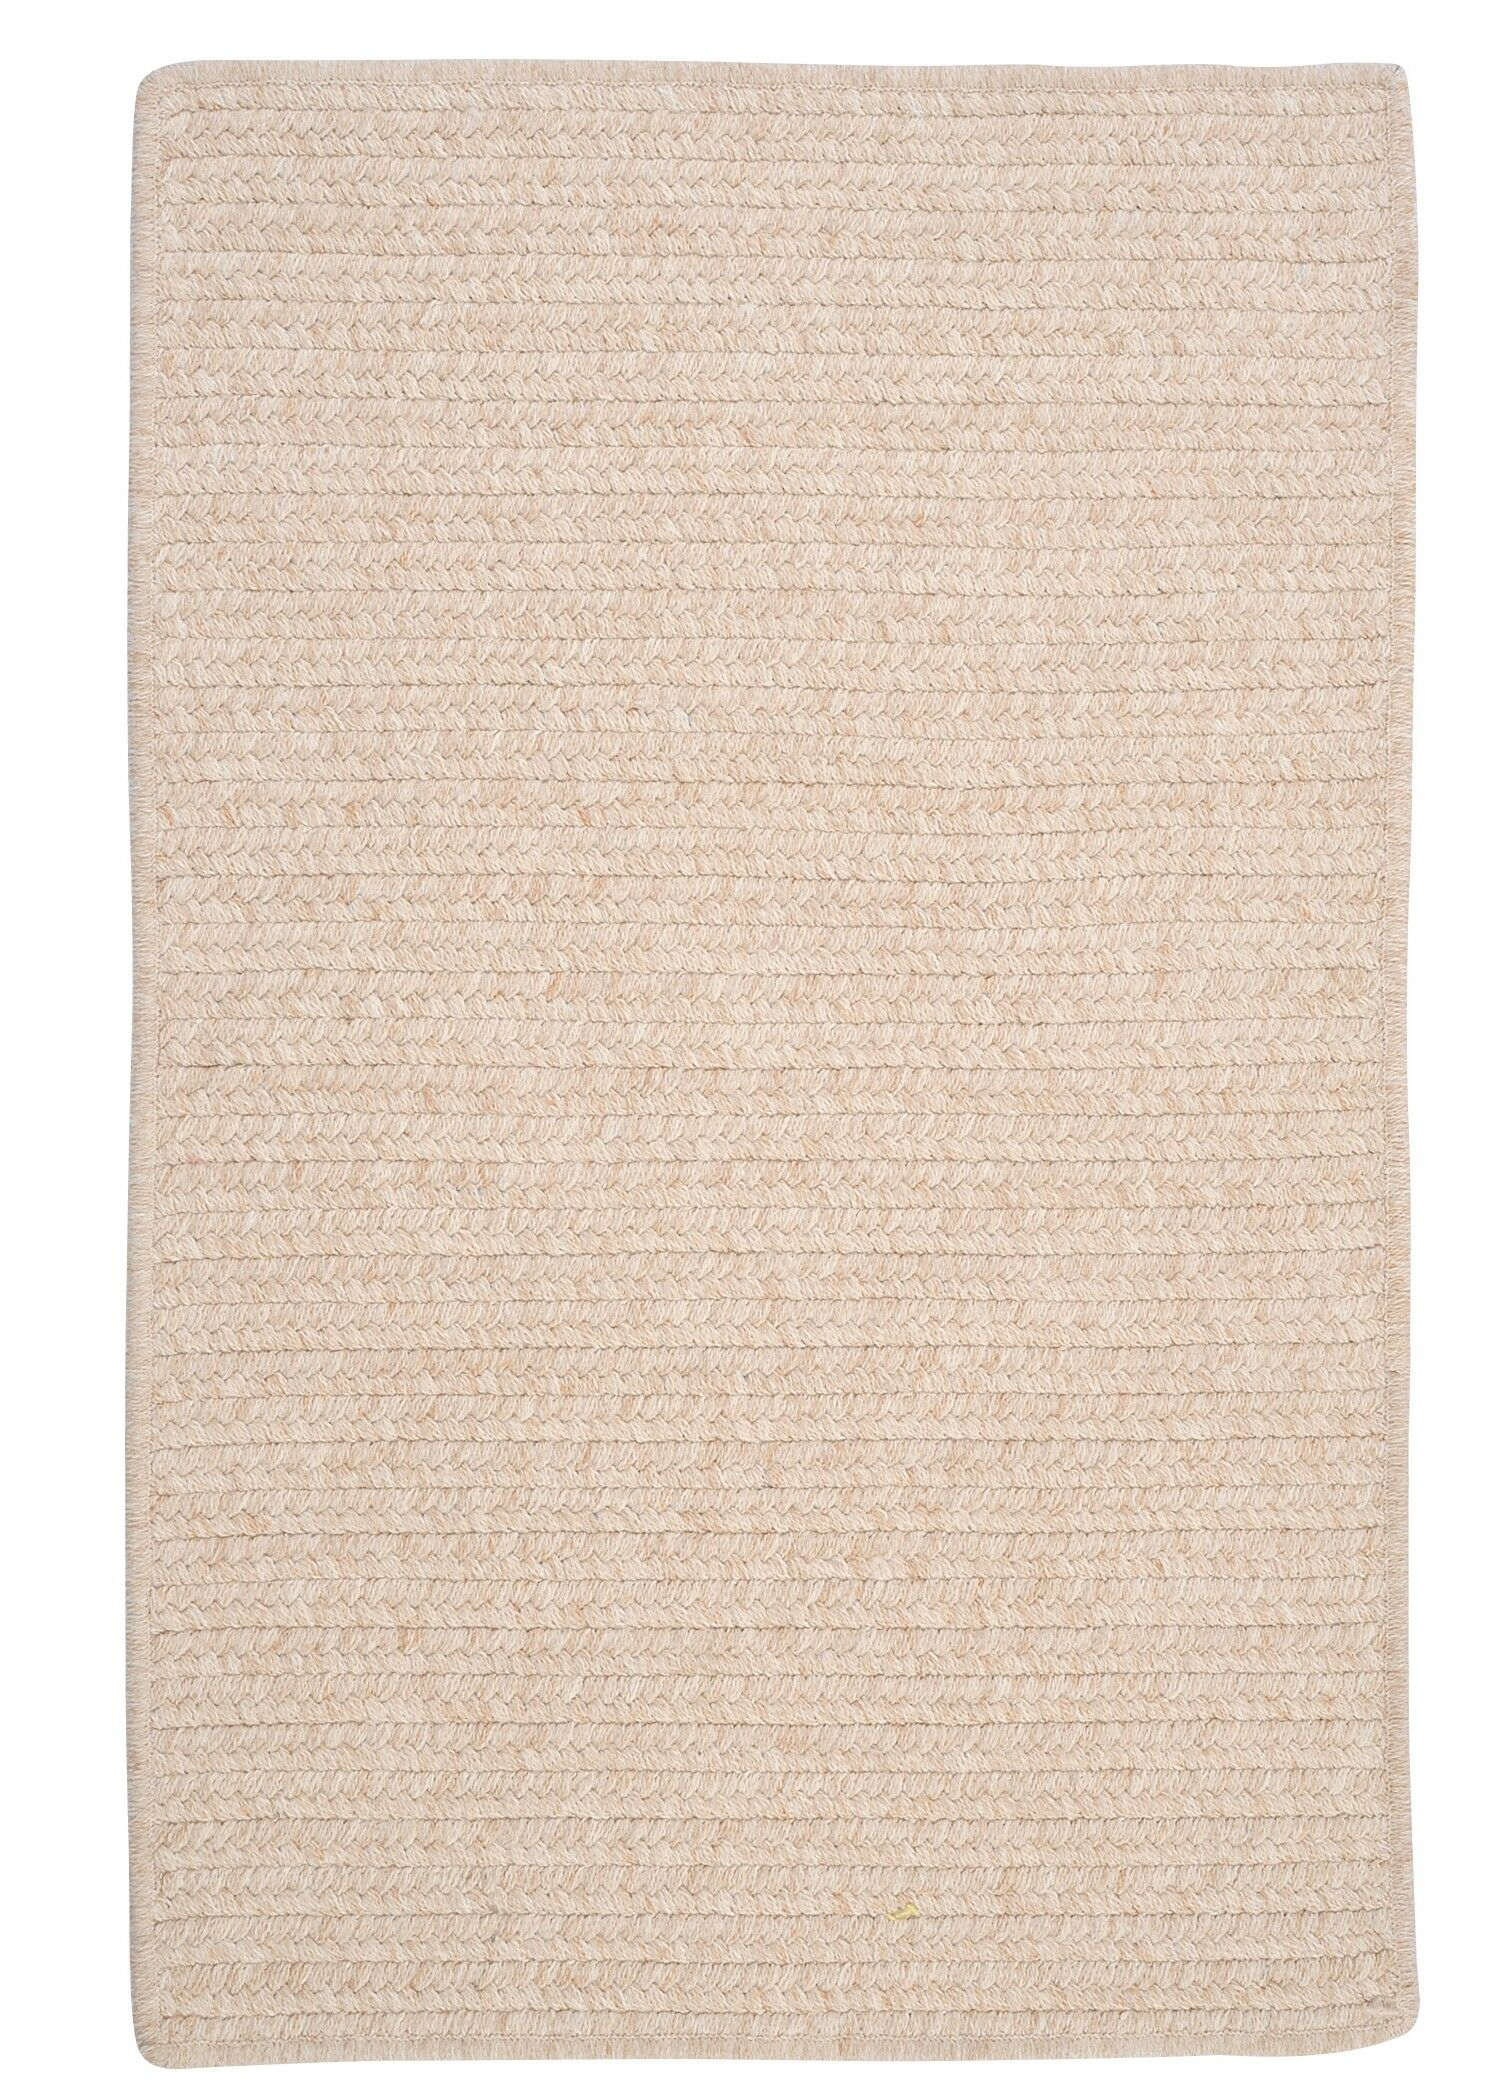 Westminster Natural Area Rug Rug Size: Square 6'